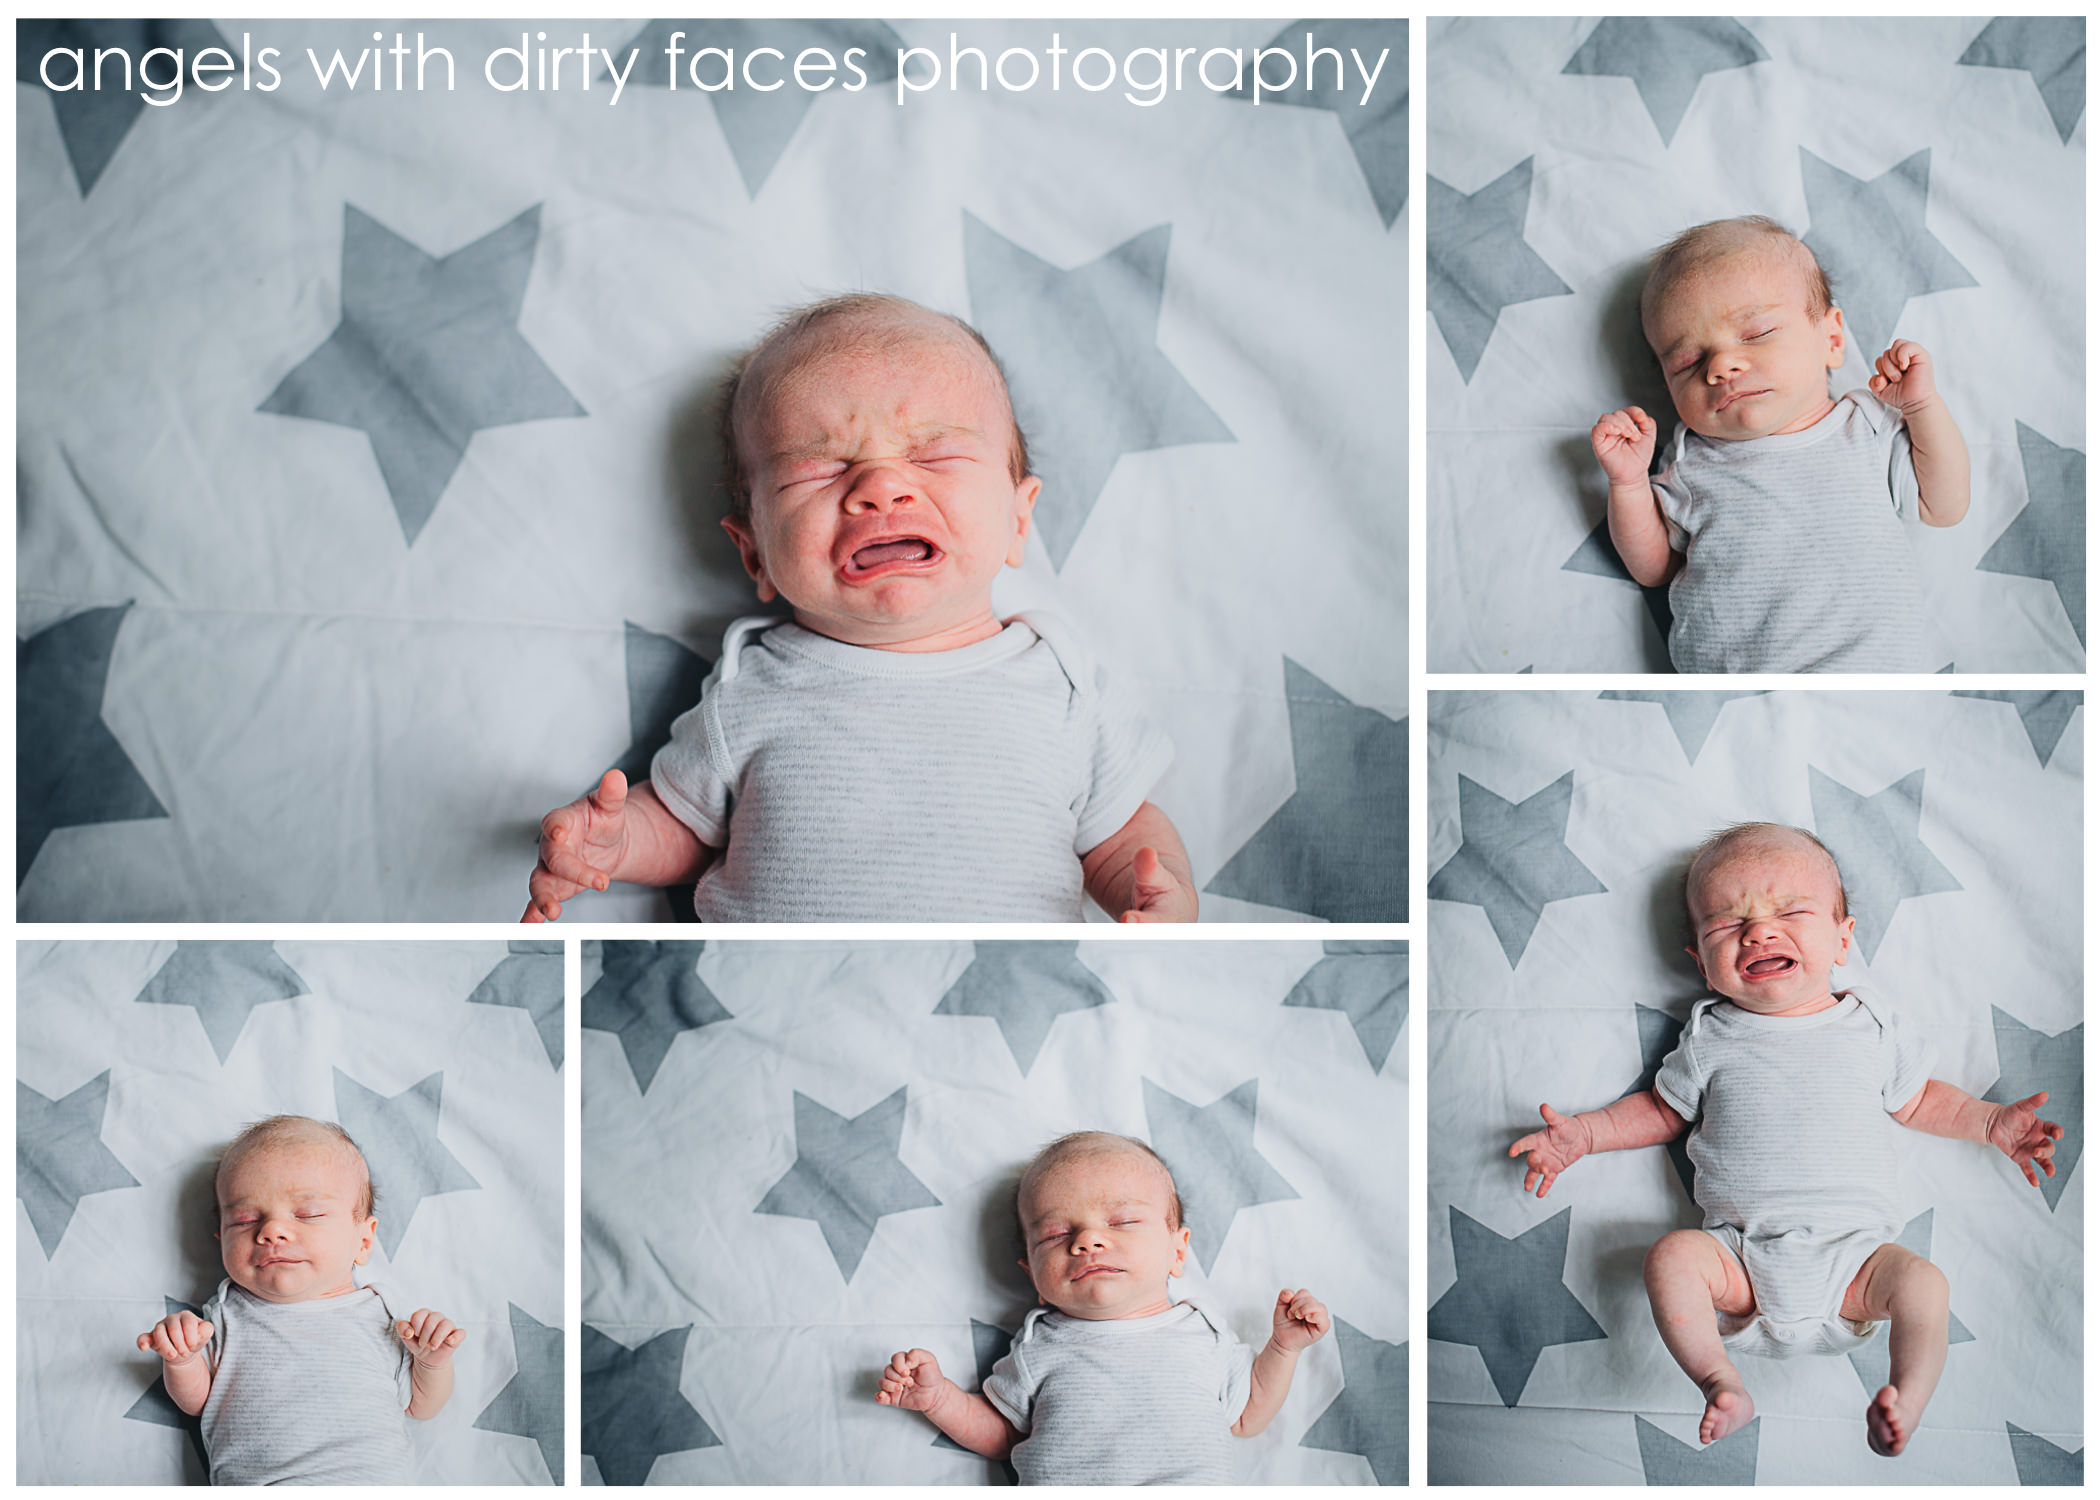 Herts Newborn Photography captures a collage of newborn moments